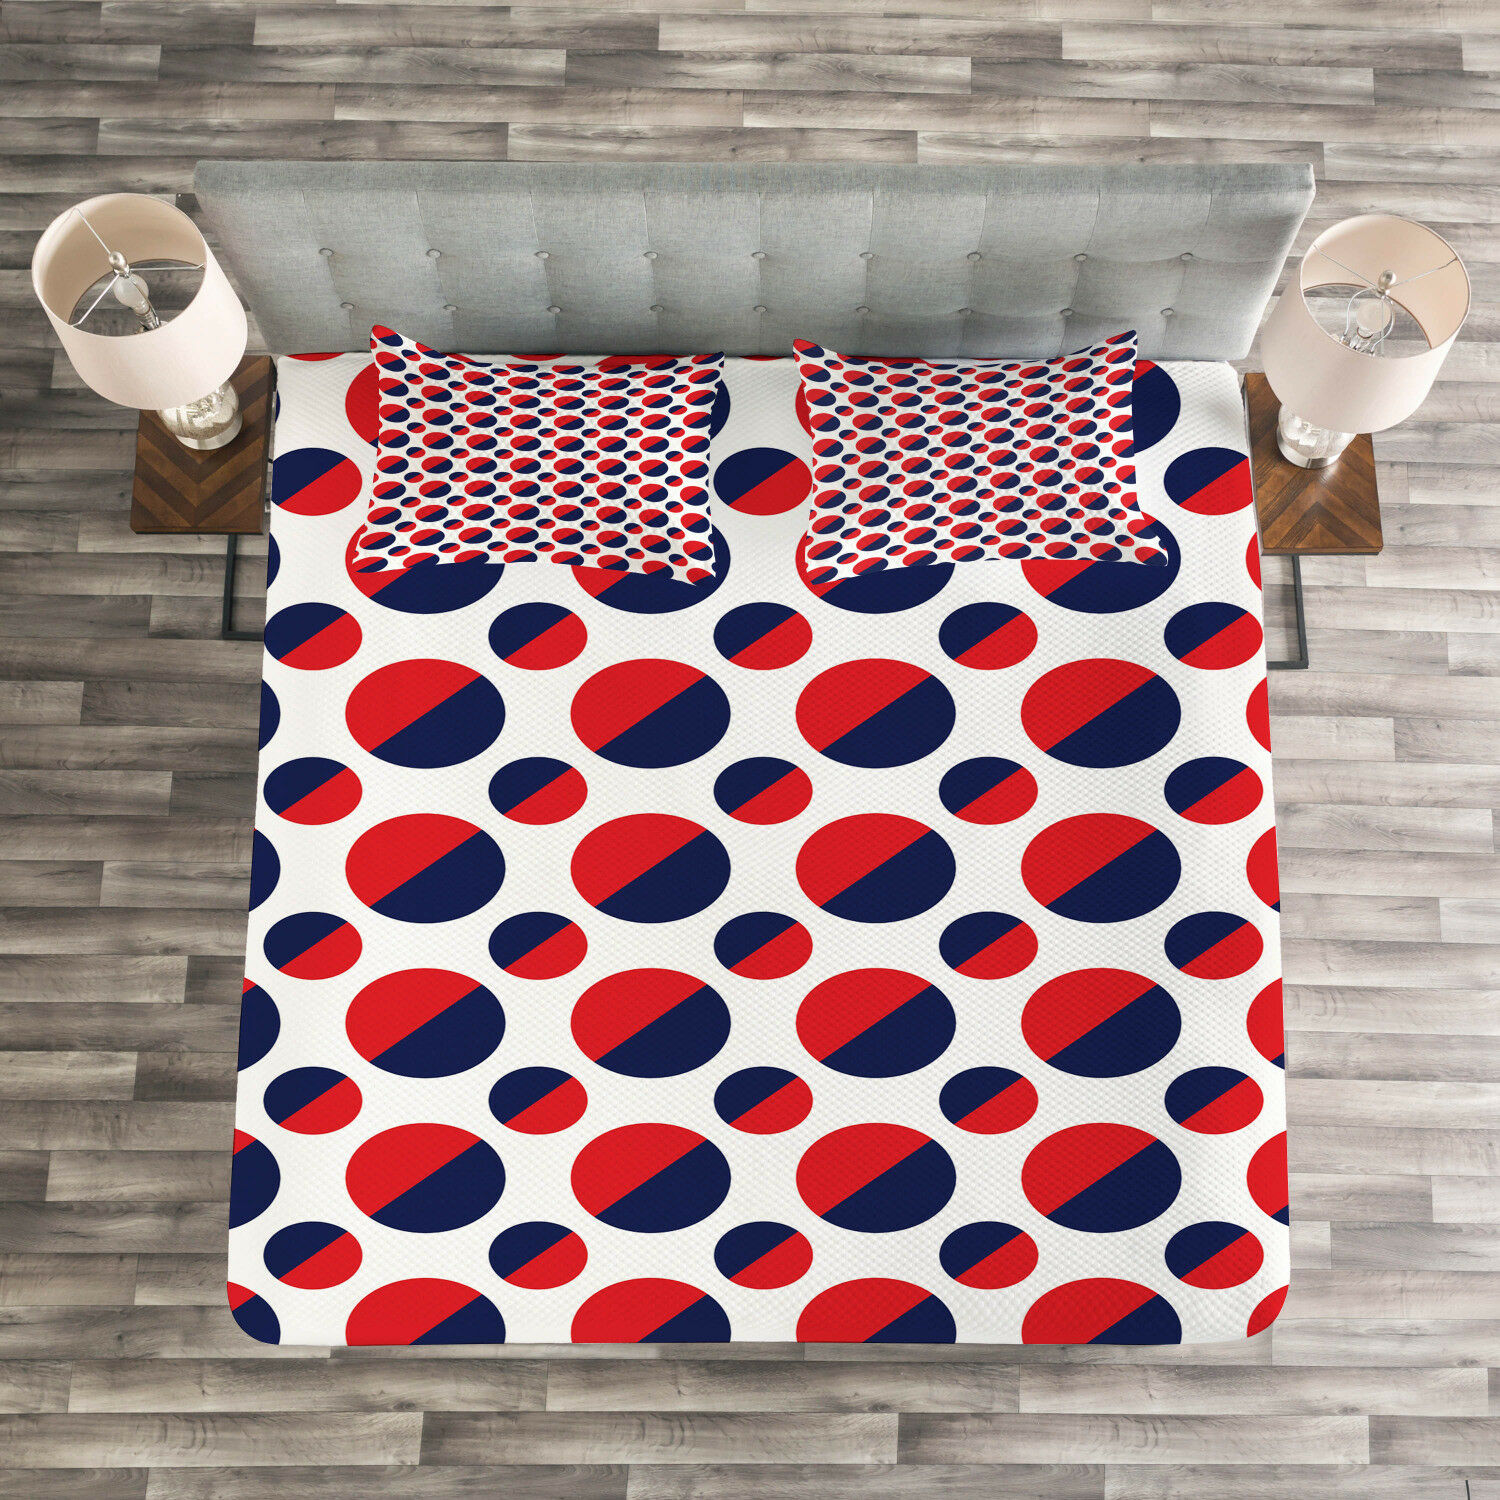 Geometric Quilted Bedspread & Pillow Shams Set, Red Circles Rounds Print